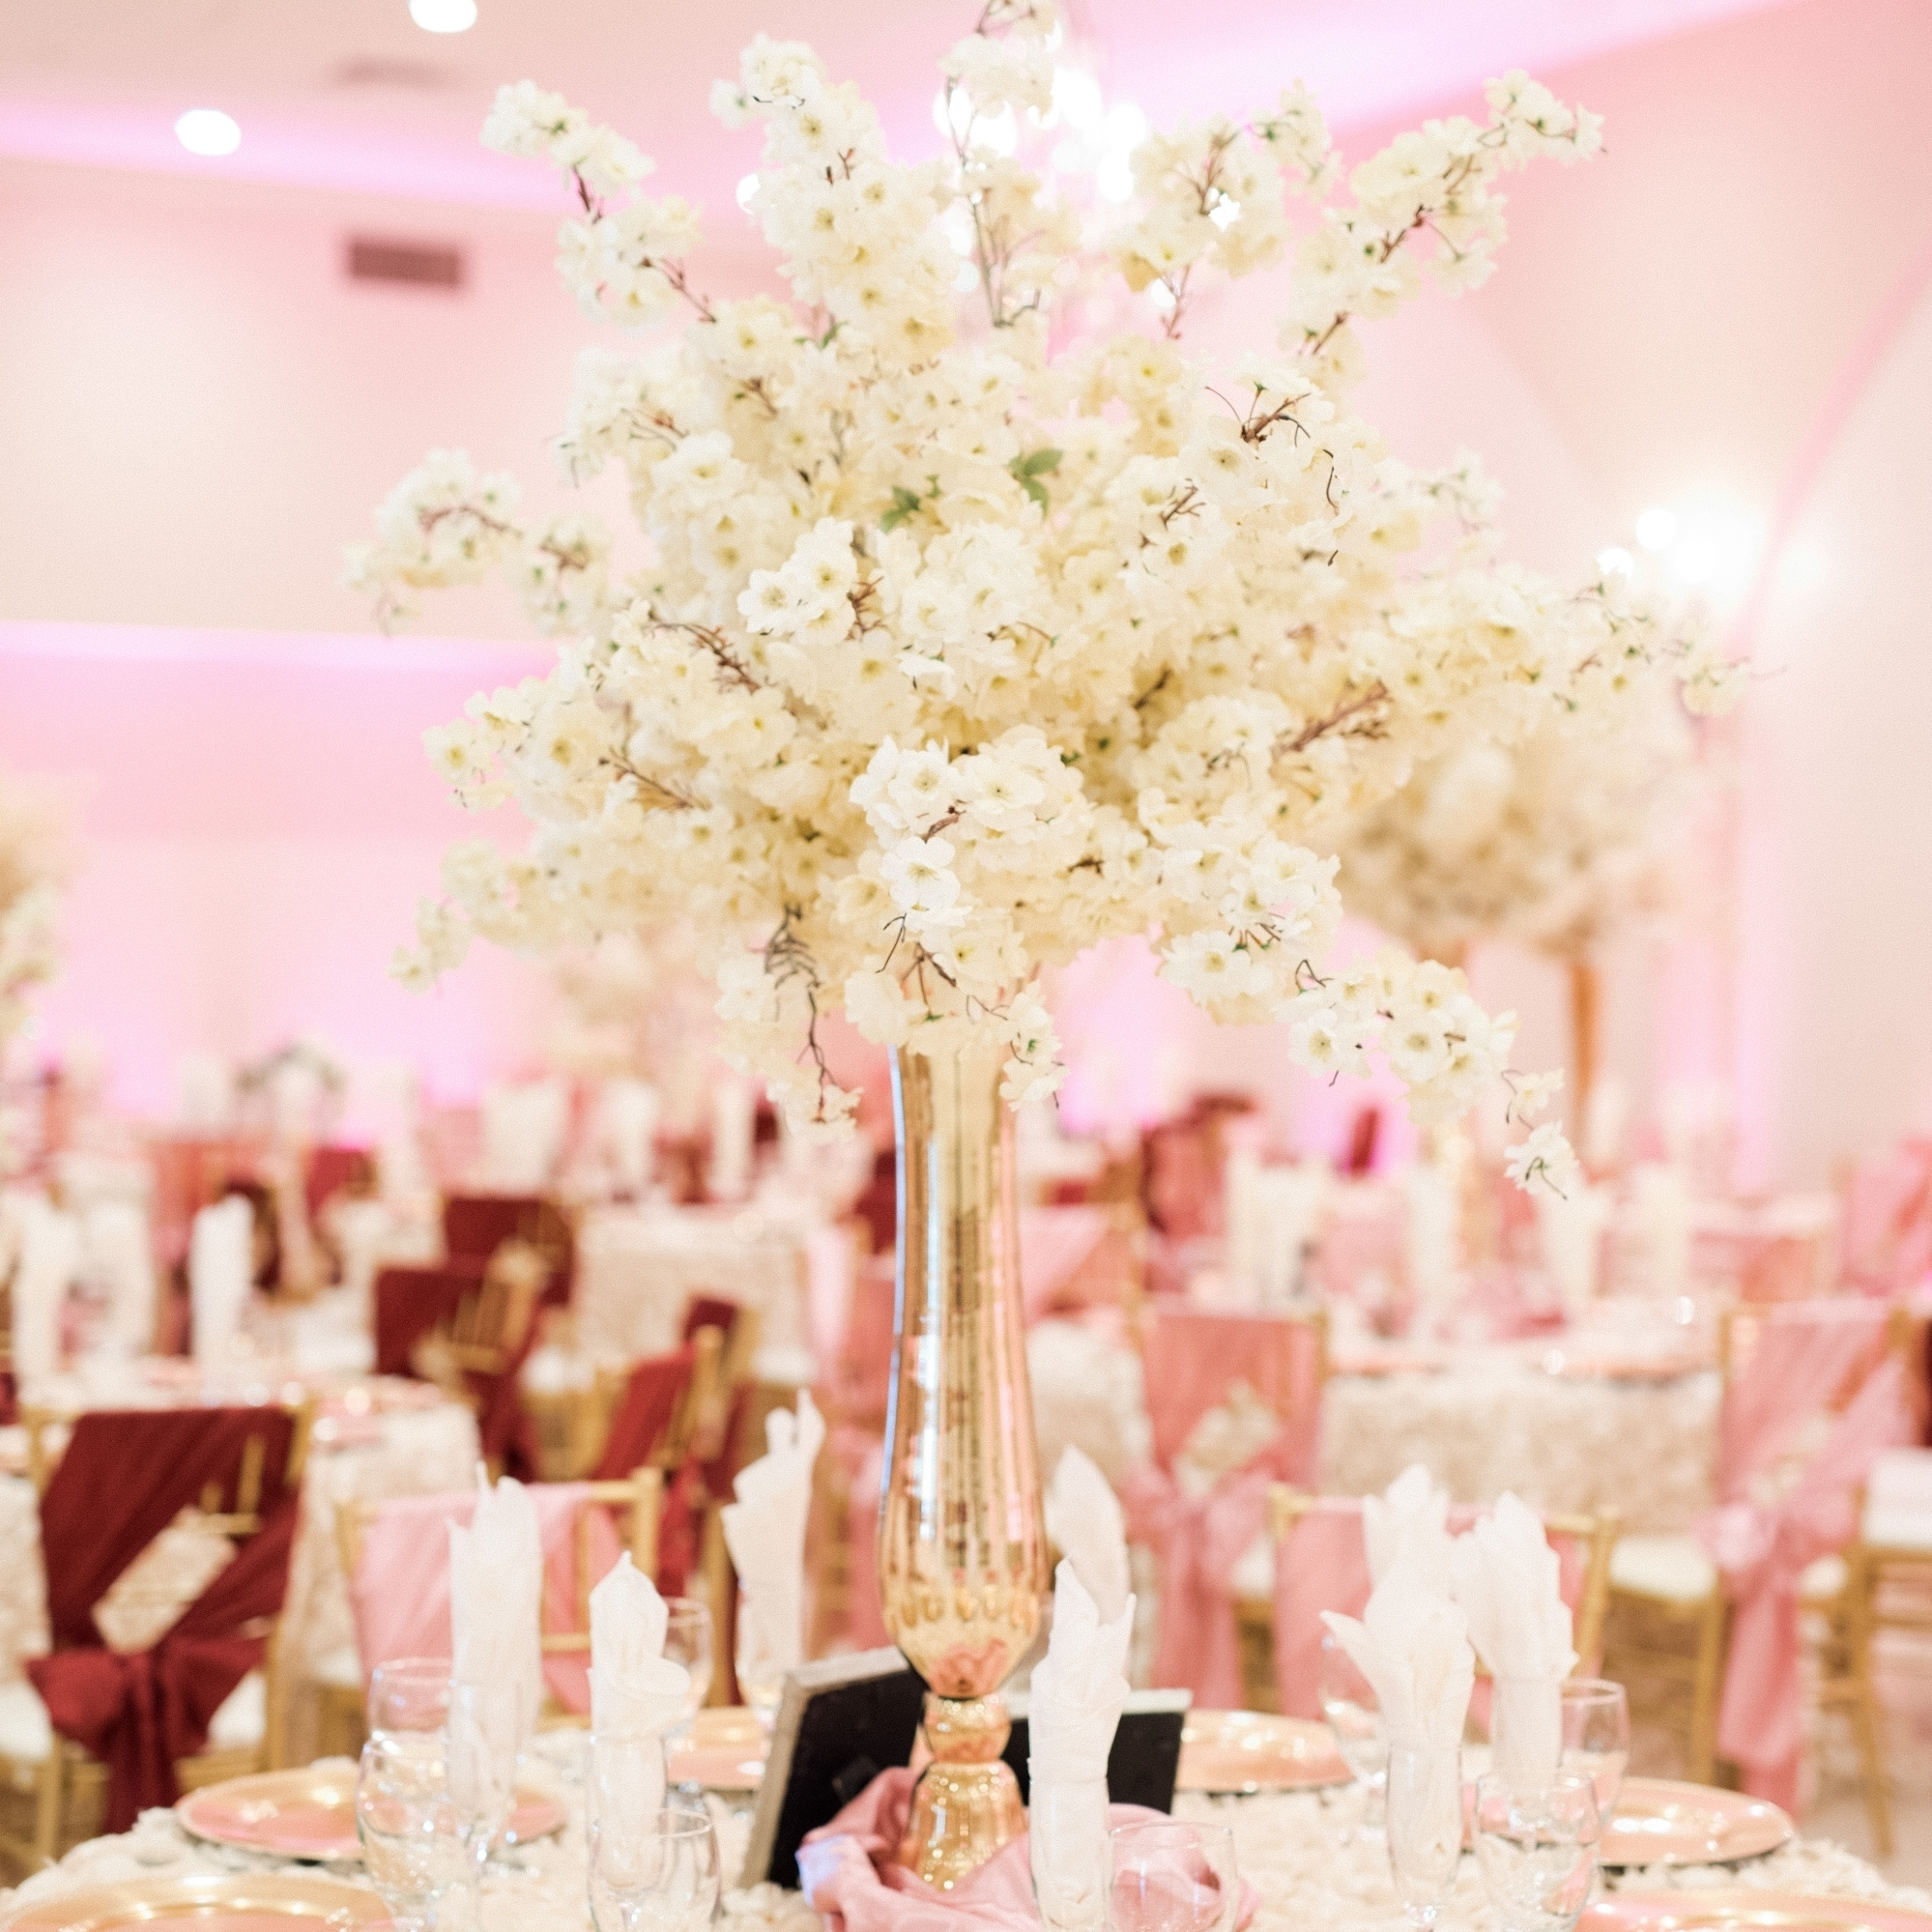 Villa Tuscana Reception Hall event showing Large white floral table centerpeice